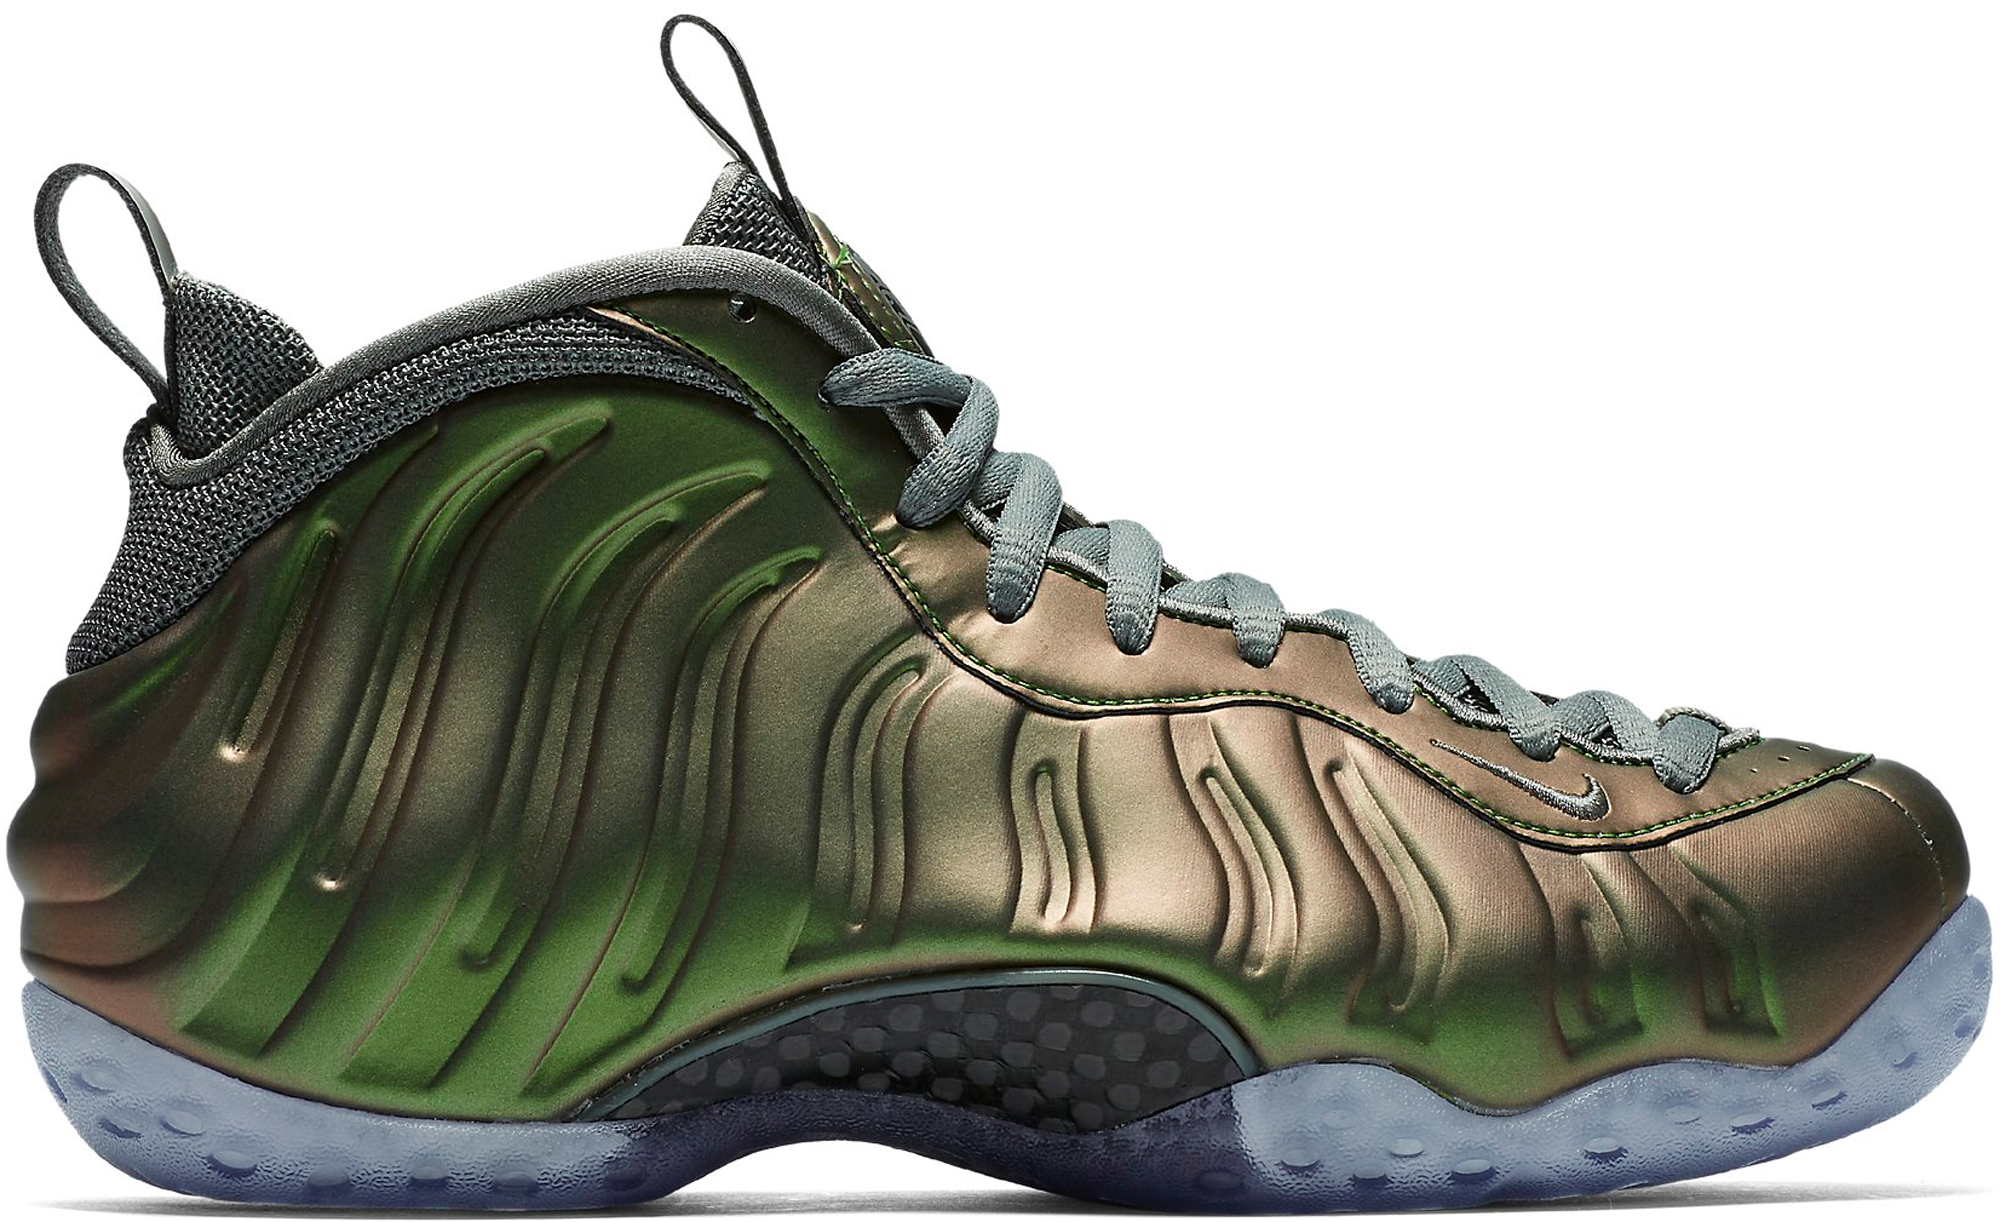 Nike Air Foamposite One Fighter Jet Tag SneakerNews.com